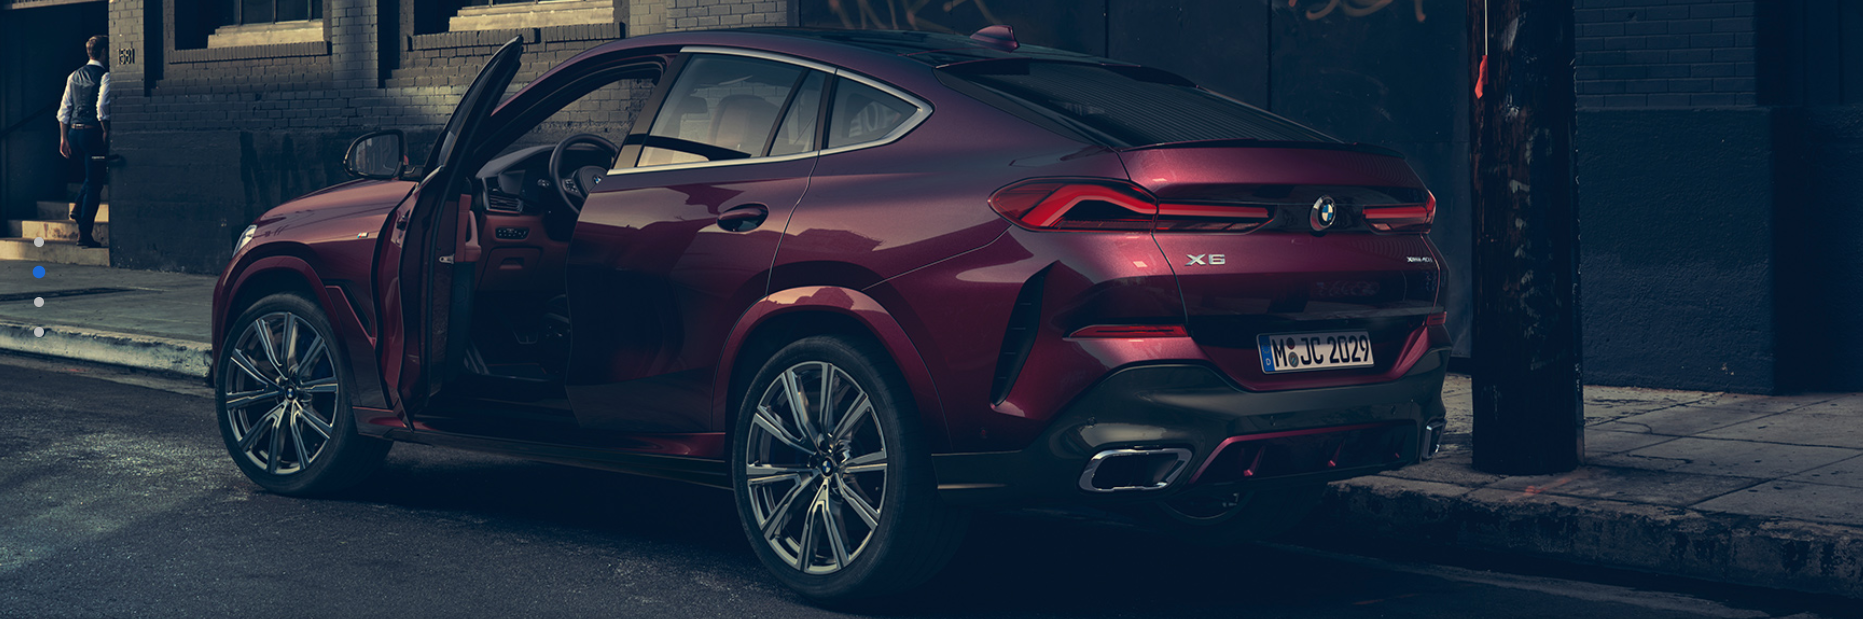 2020 BMW X6 shown in red parked on street with drivers door open